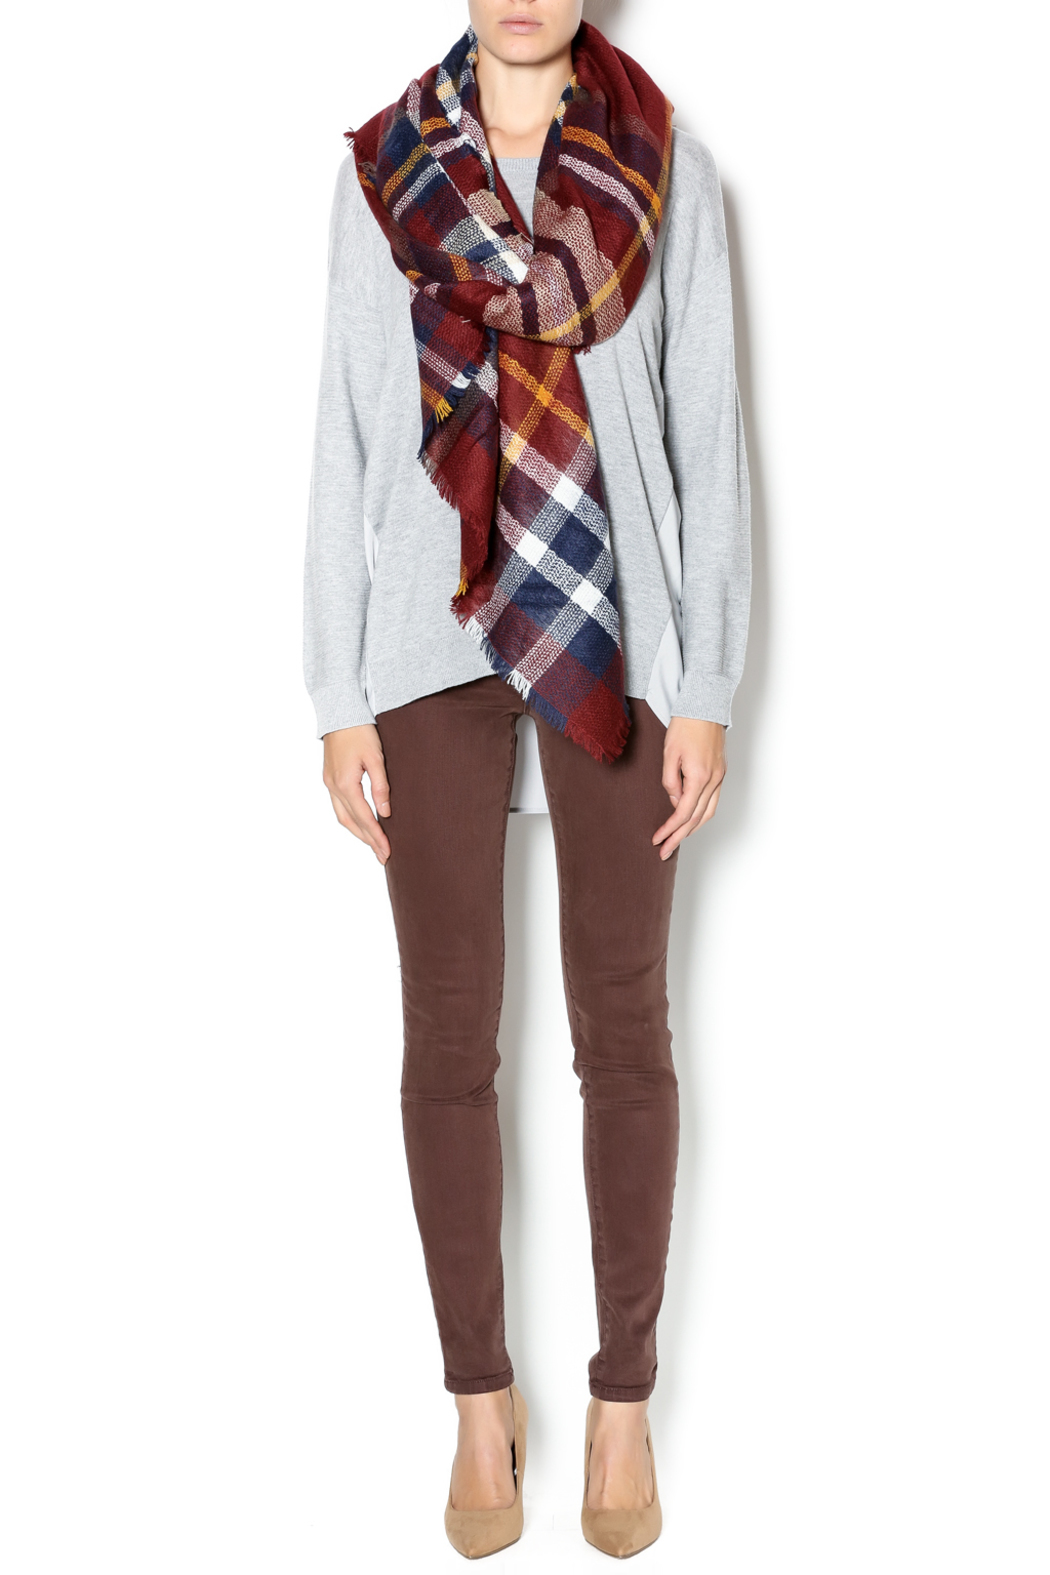 Fort Greene General Store Cranberry Plaid Blanket Scarf - Main Image